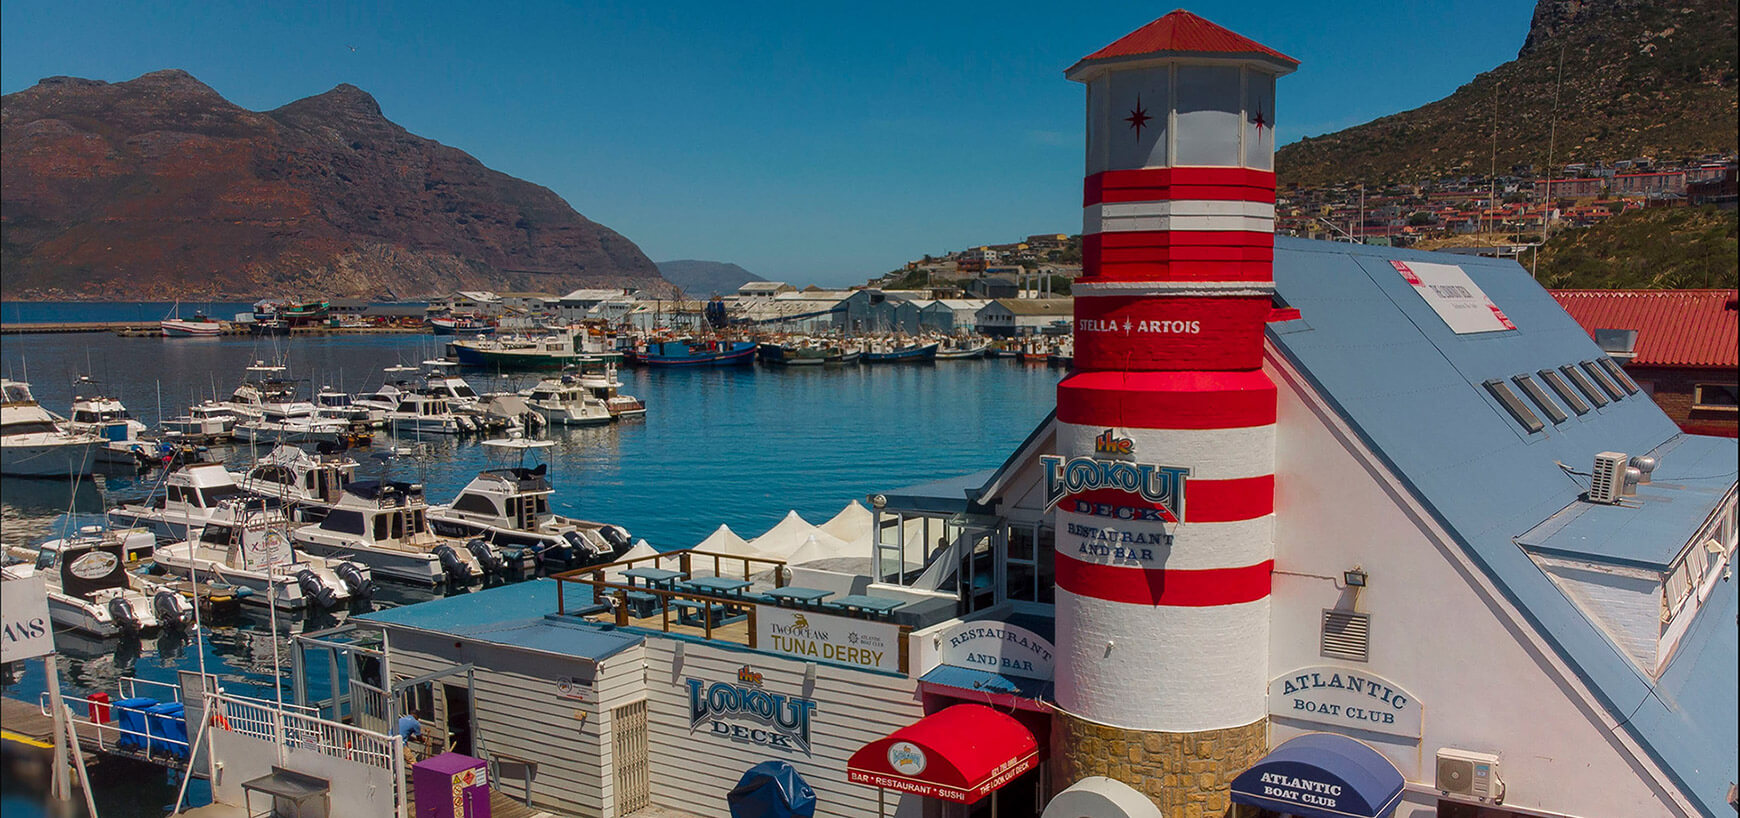 Lookout-Deck-Hout-Bay-Landing-Pic